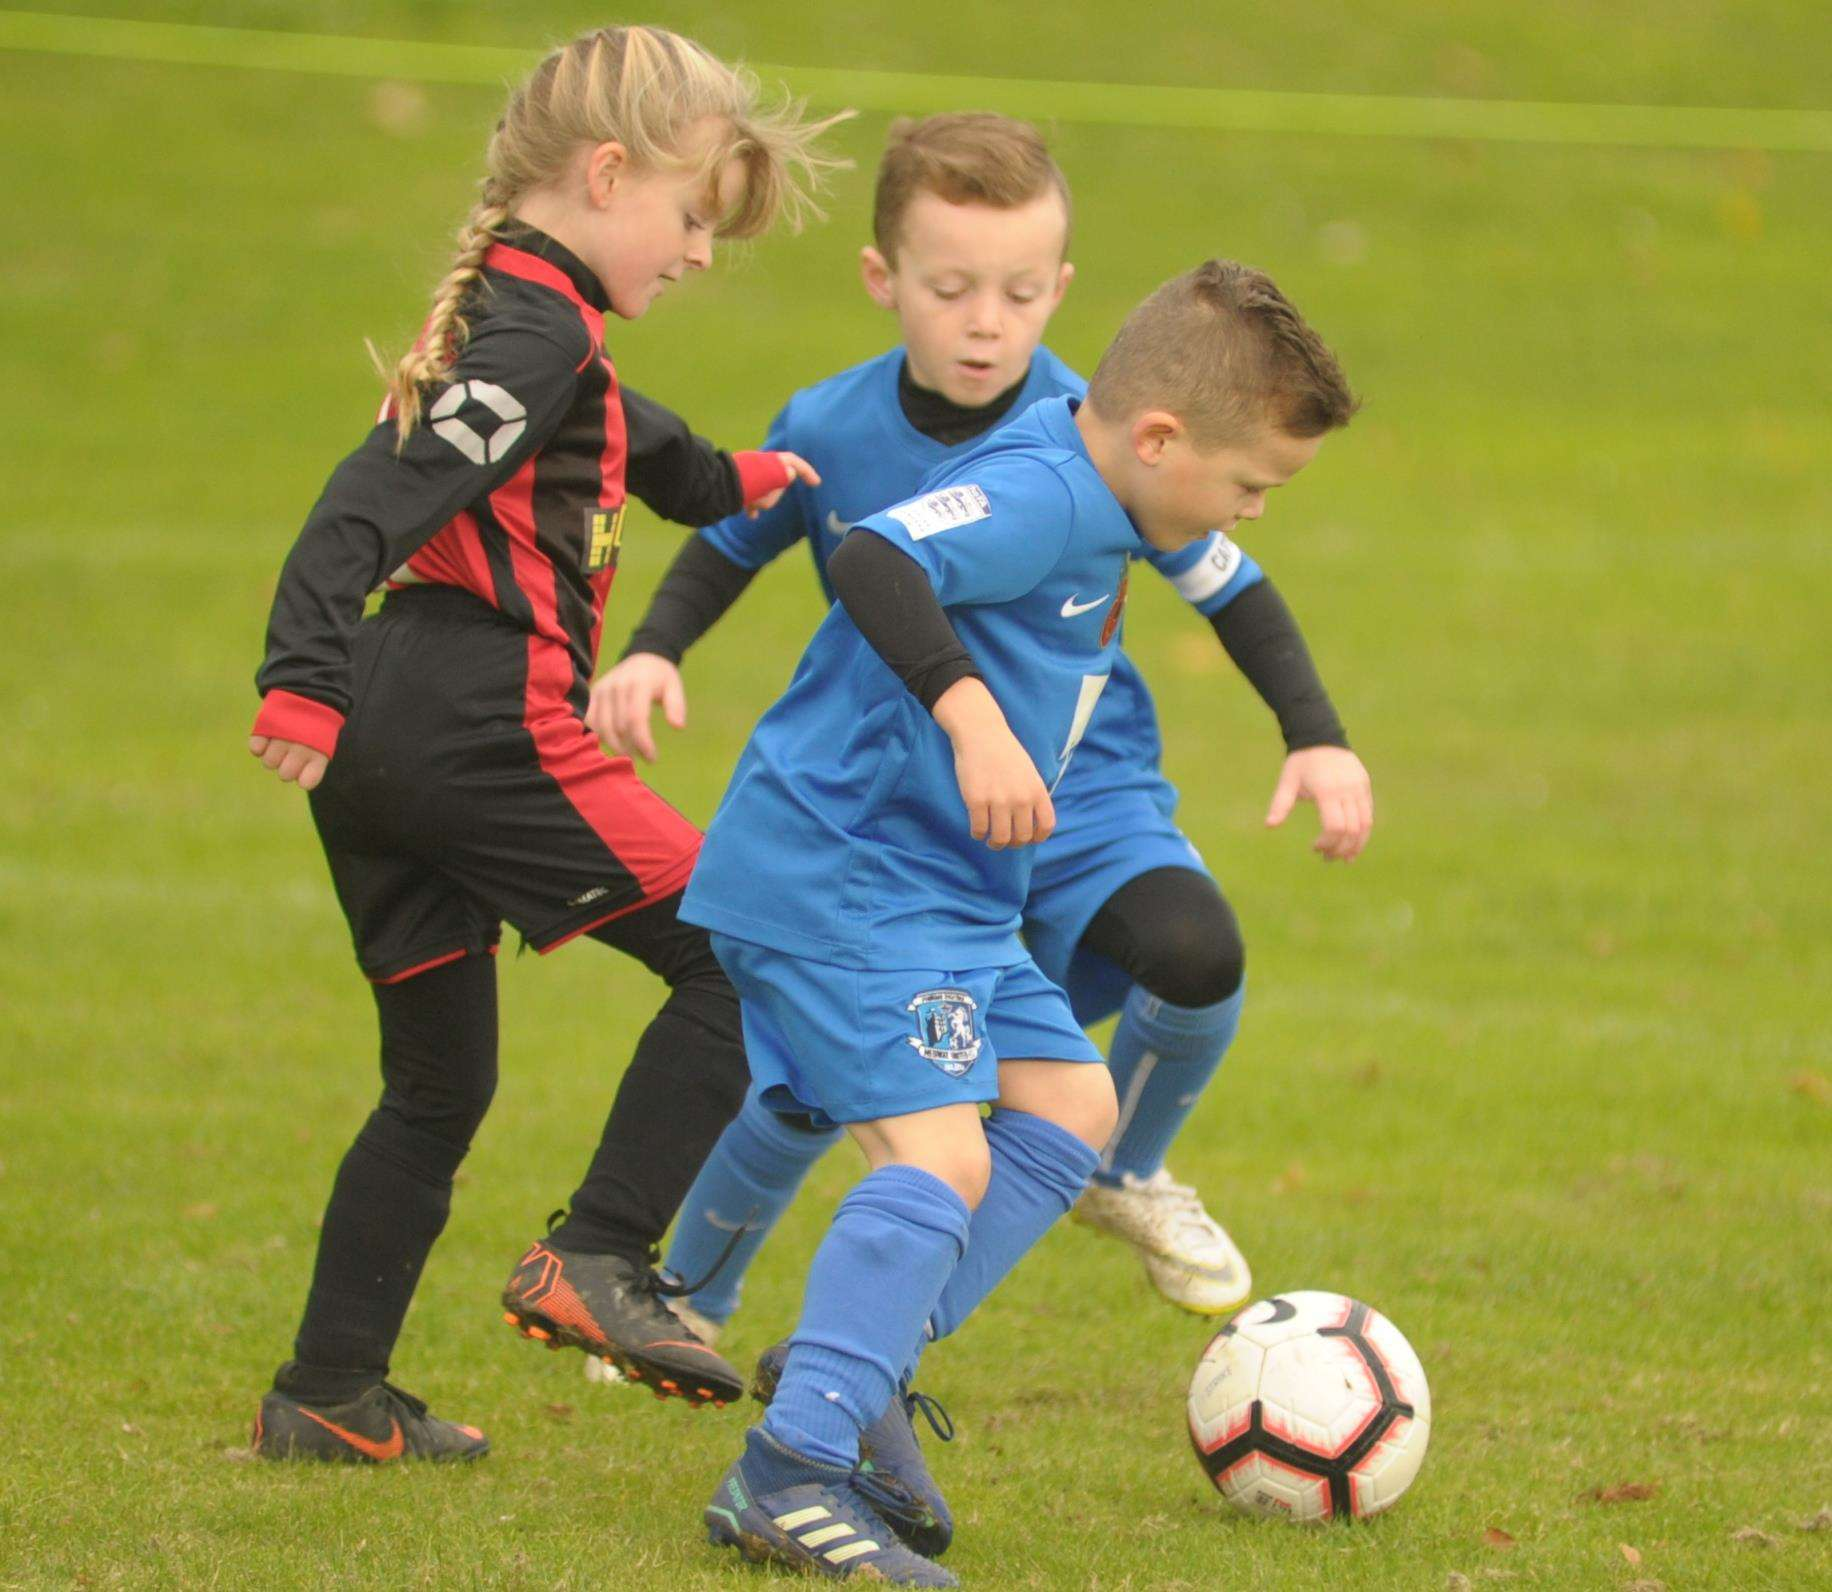 Under-8 sides Medway United West and Woodcoombe Youth battle it out Picture: Steve Crispe